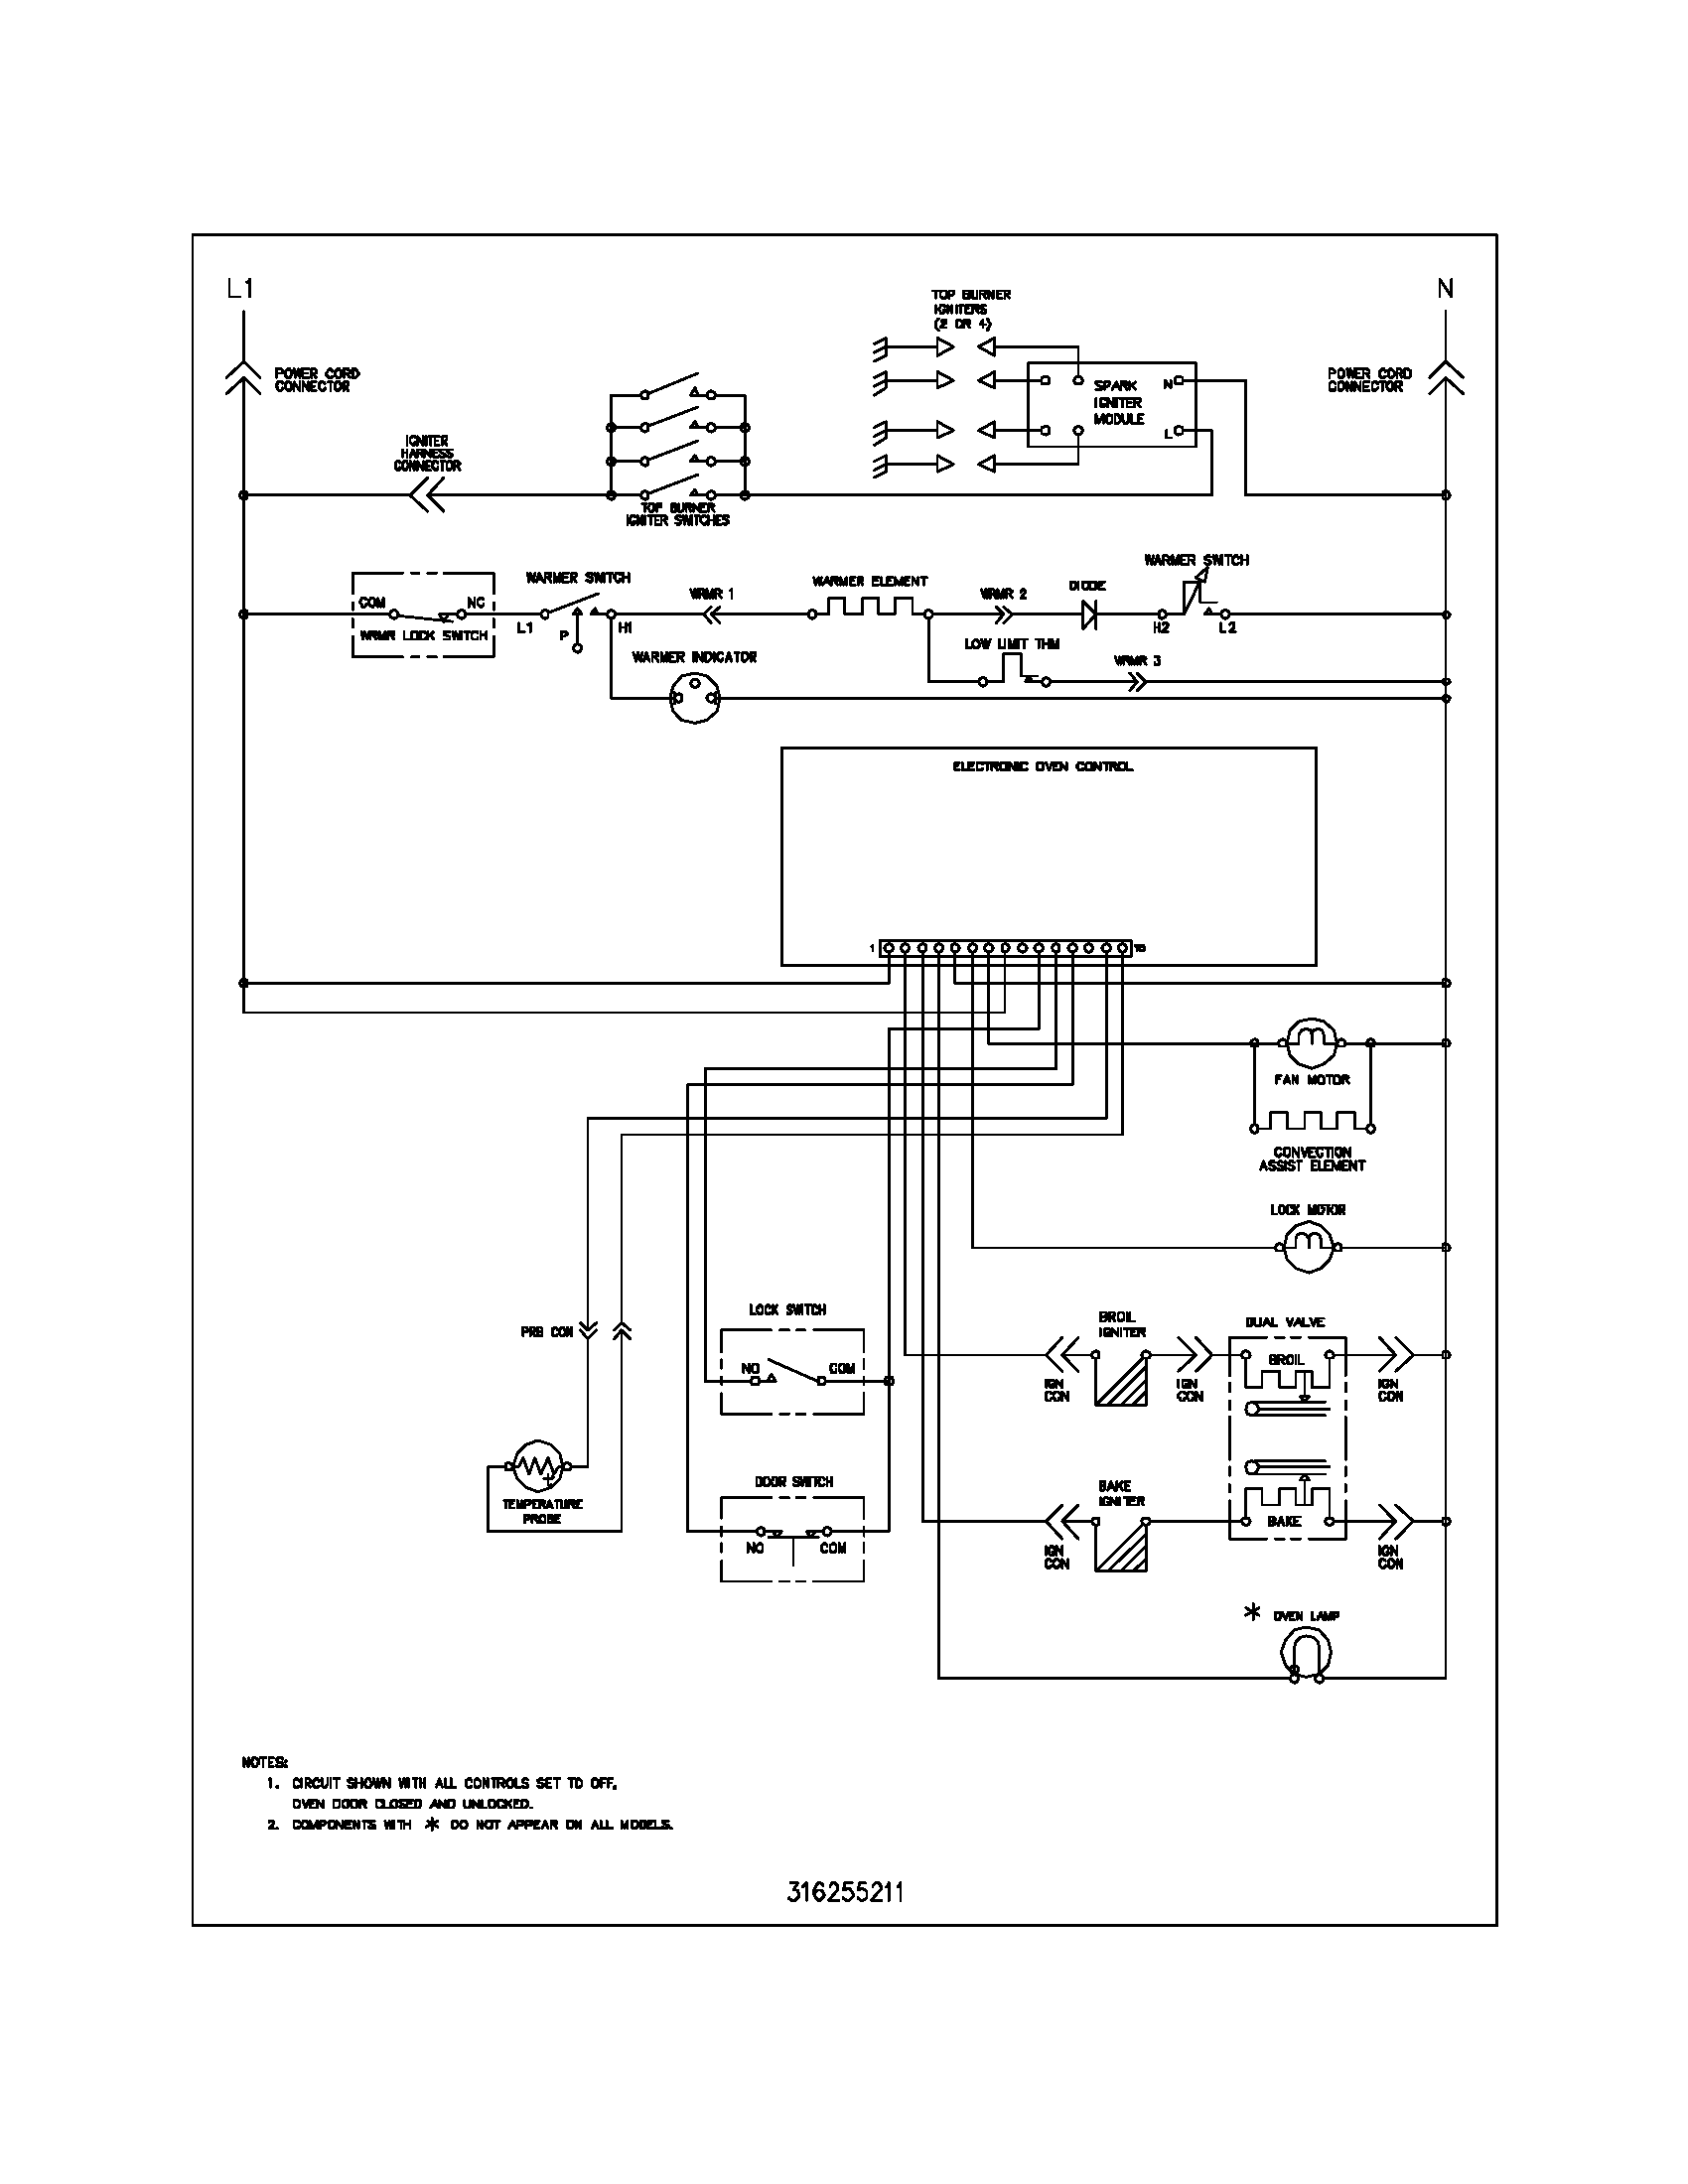 wiring schematic parts frigidaire plgf389ccc gas range timer stove clocks and appliance gas guard wiring diagram at crackthecode.co